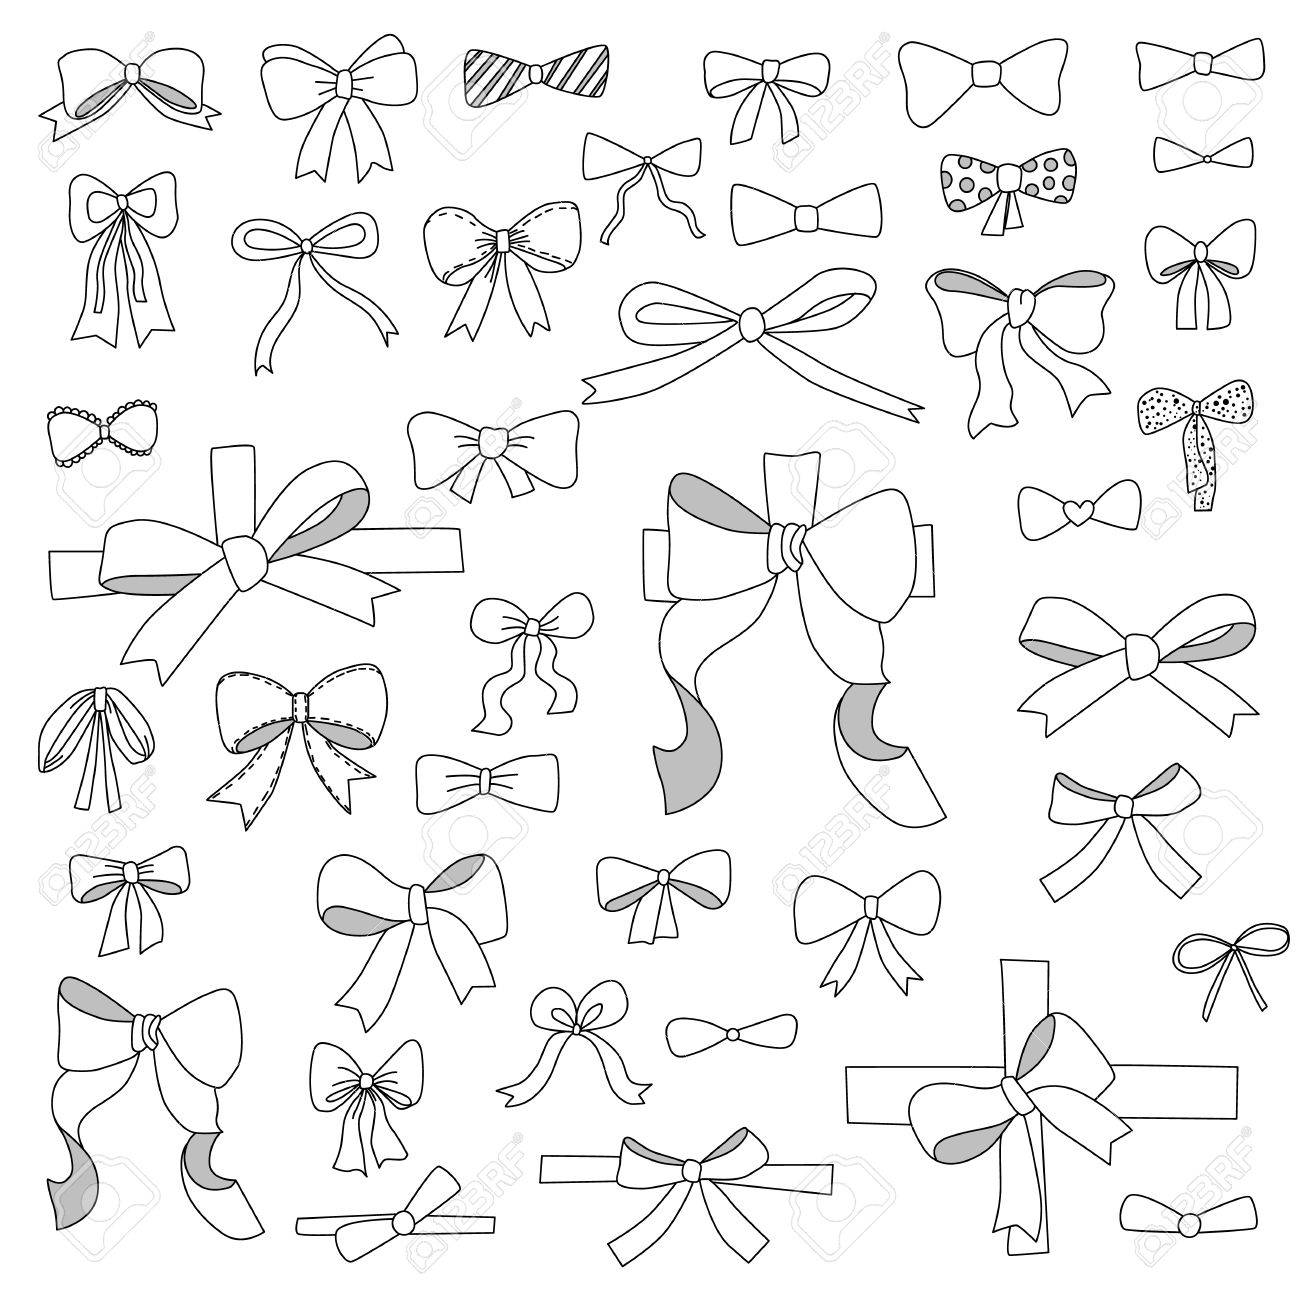 doodle set of bows, ribbons.